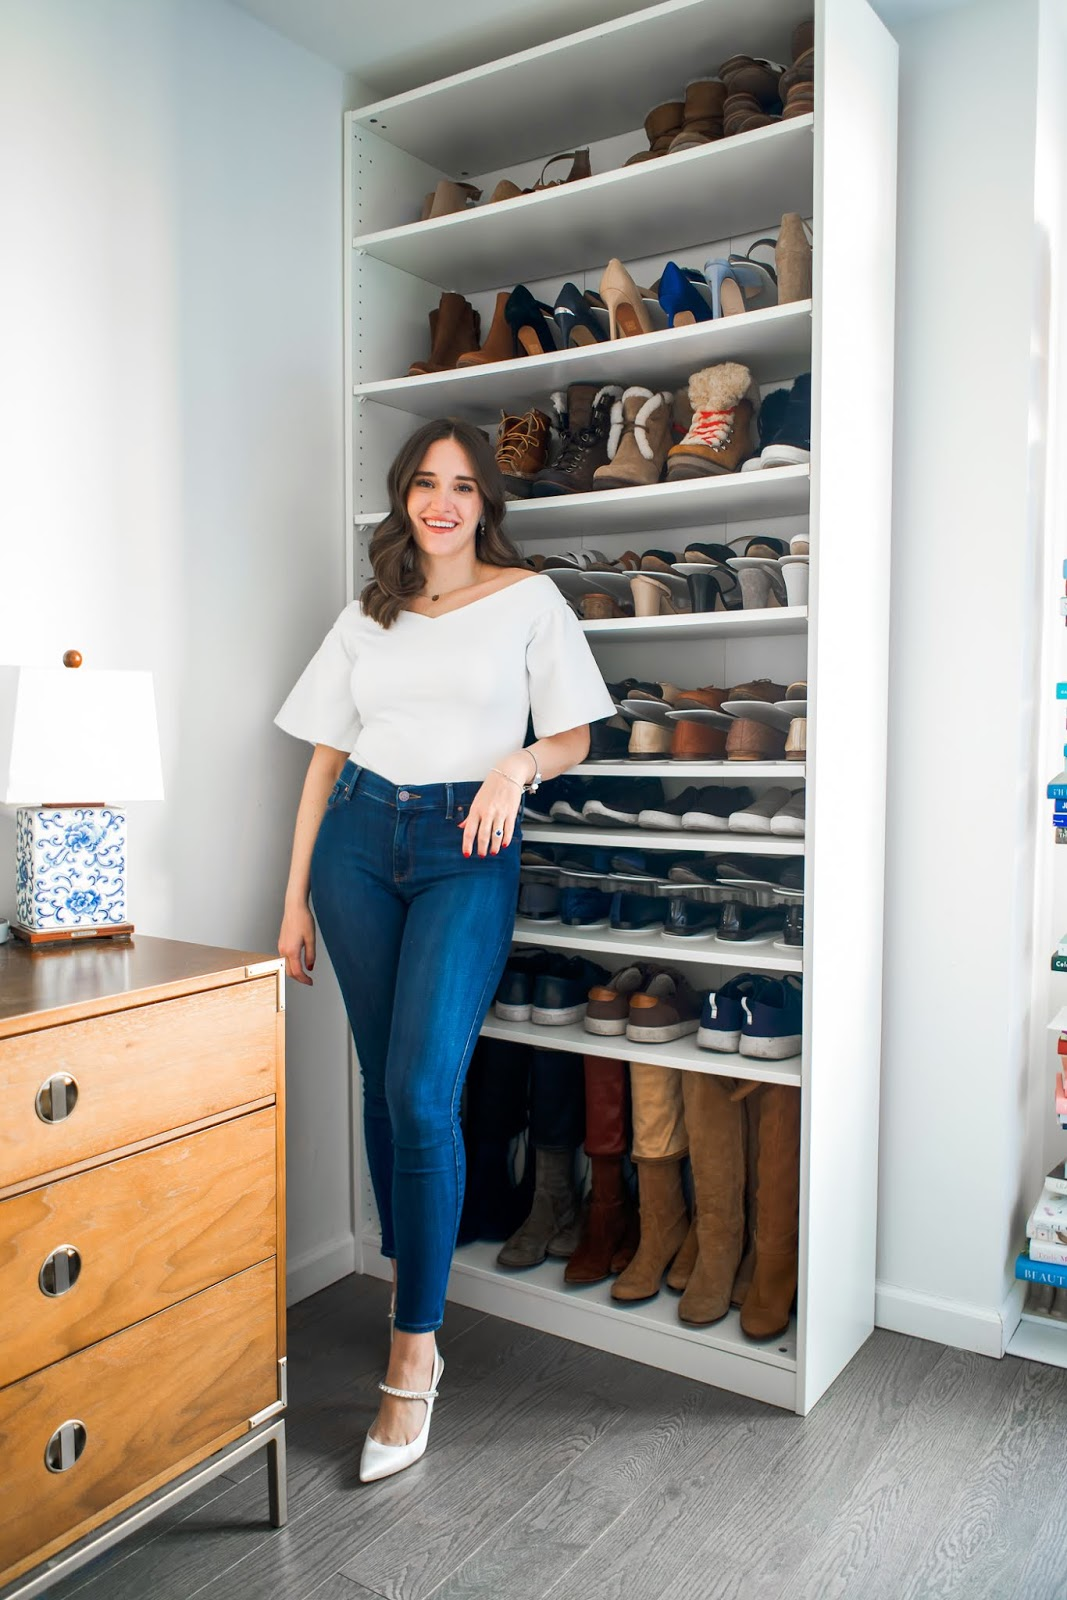 d4c0690a899c7 How I Store and Organize My Shoes